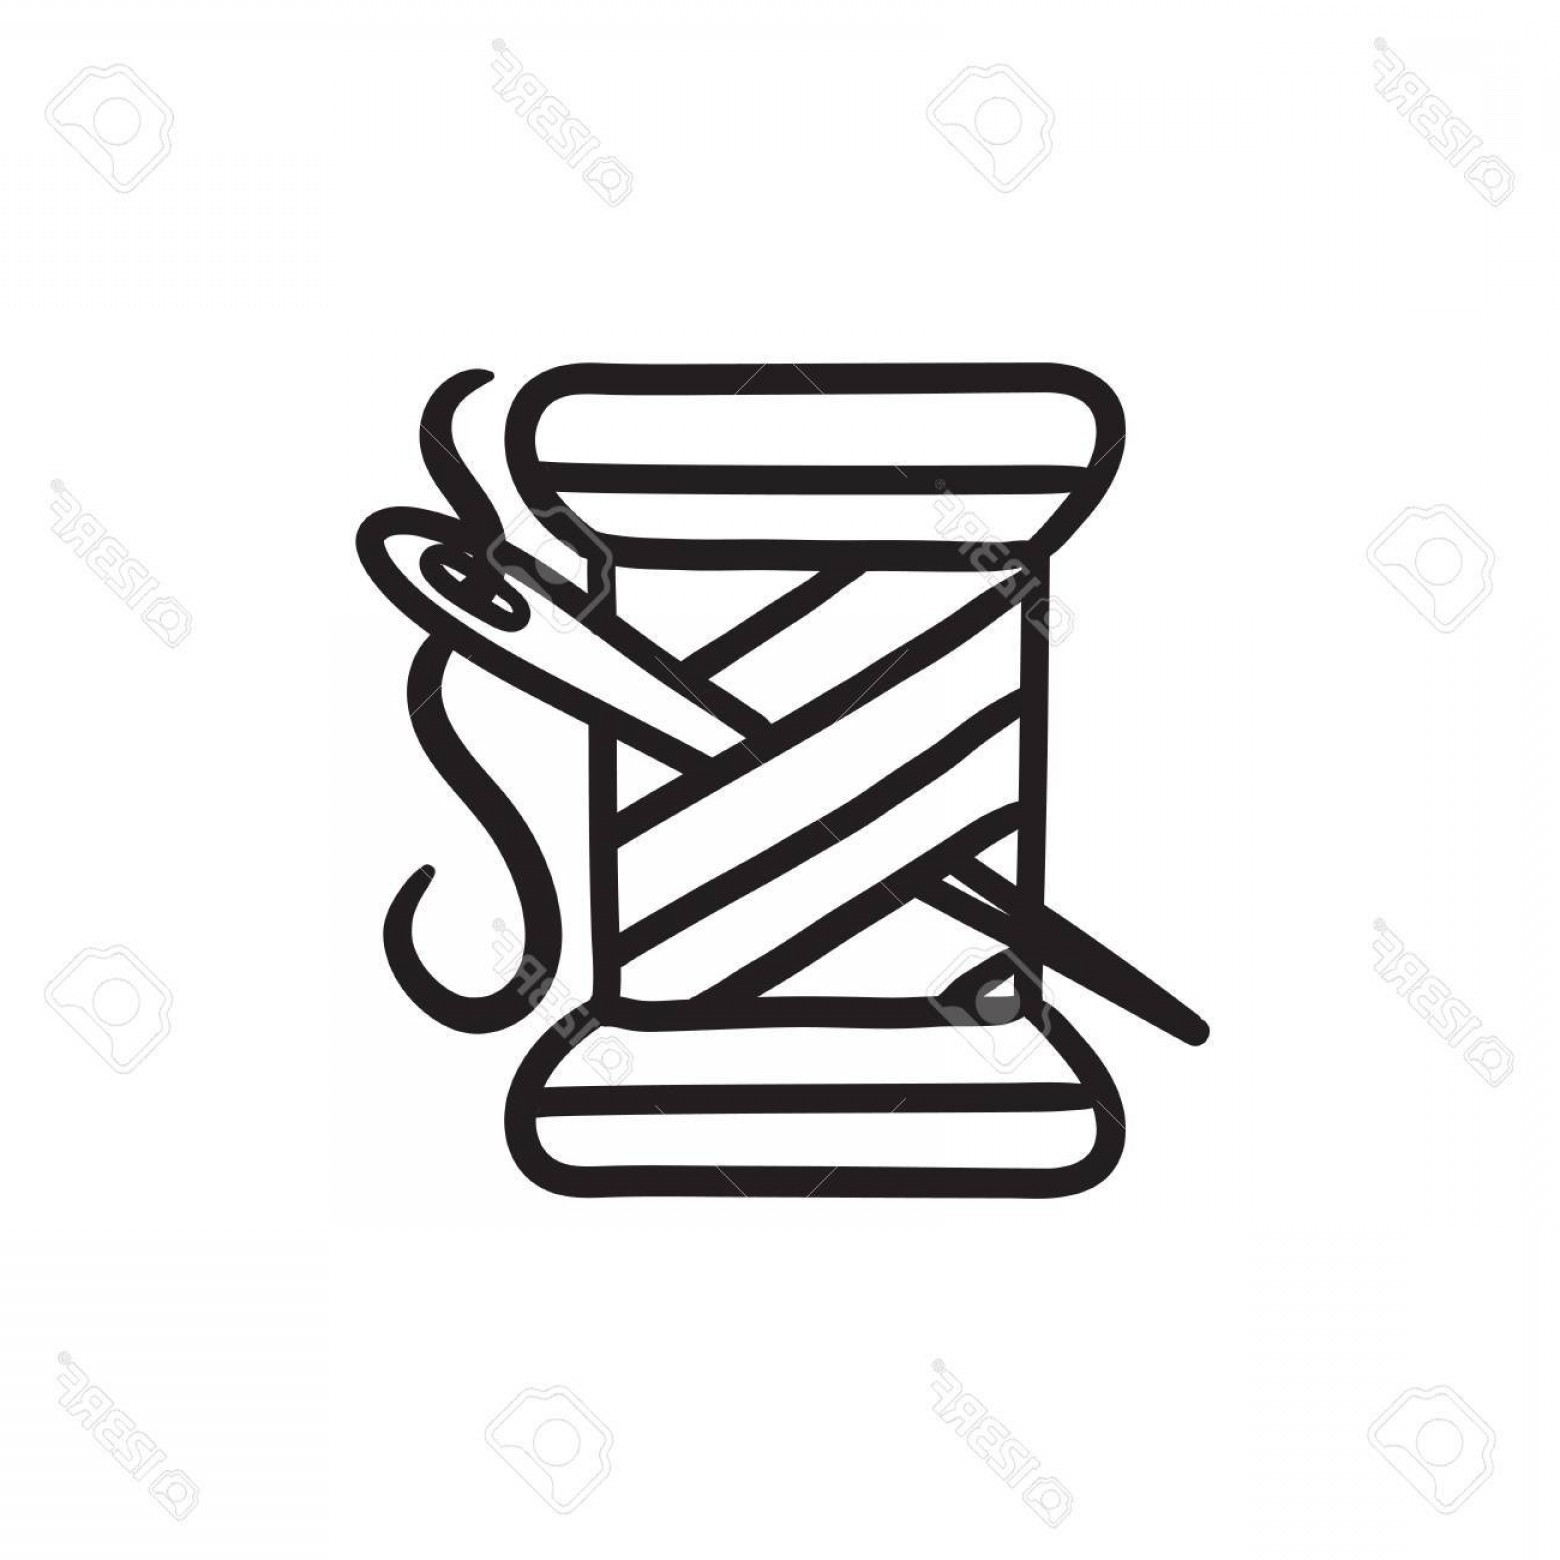 Sewing Spool Vector: Photostock Vector Spool Of Thread And Needle Vector Sketch Icon Isolated On Background Hand Drawn Spool Of Thread And